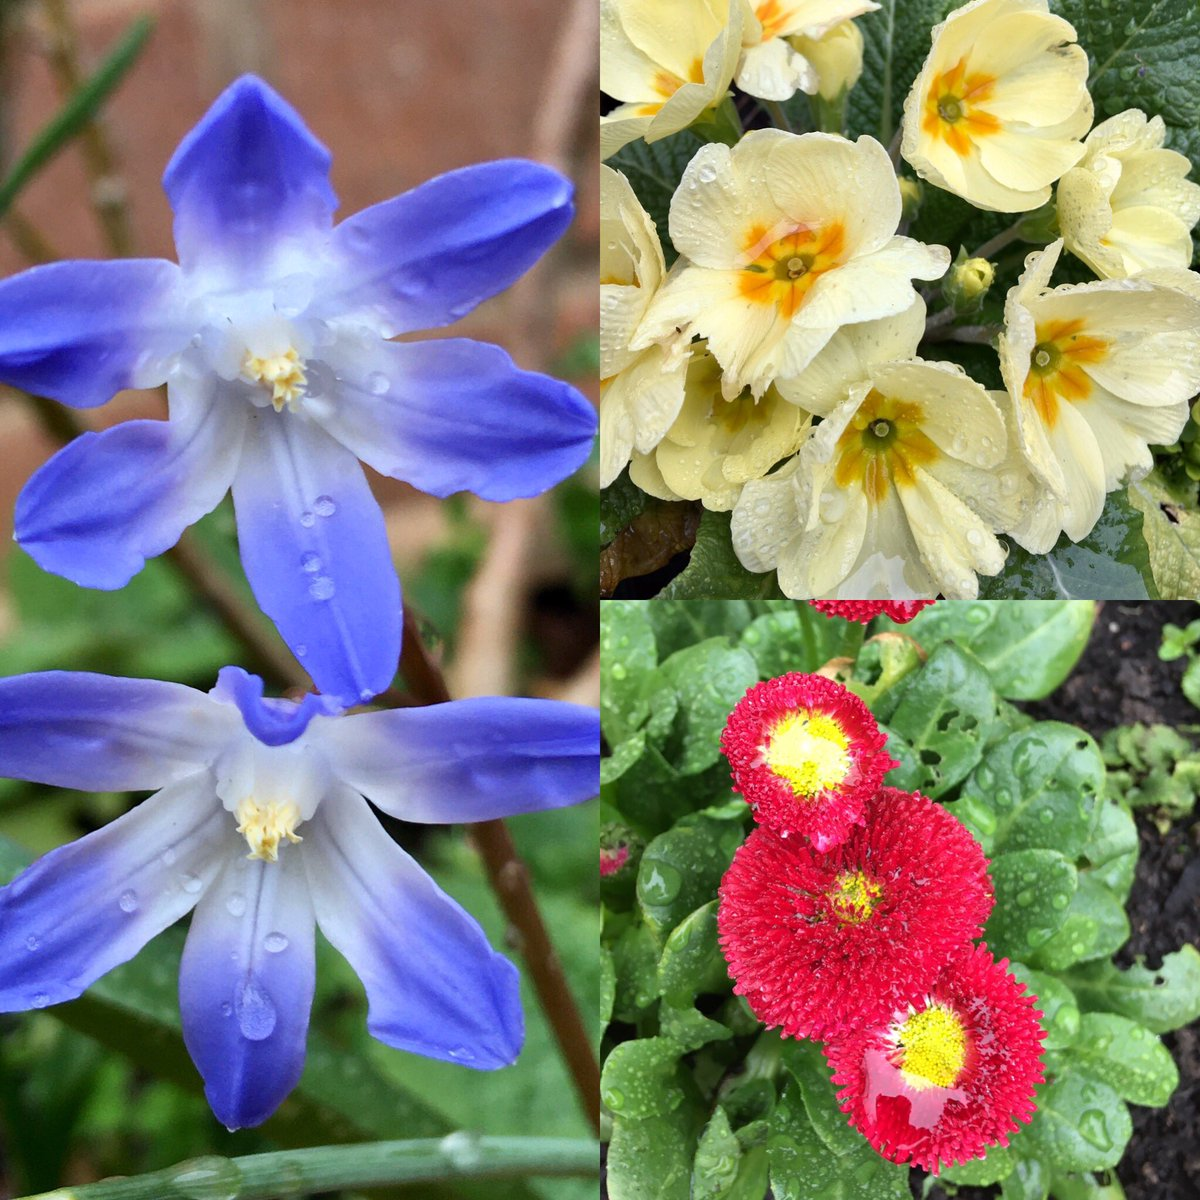 A slightly soggy #sixonsaturday from our garden 🌺🌼 hope you all have a lovely weekend 😀